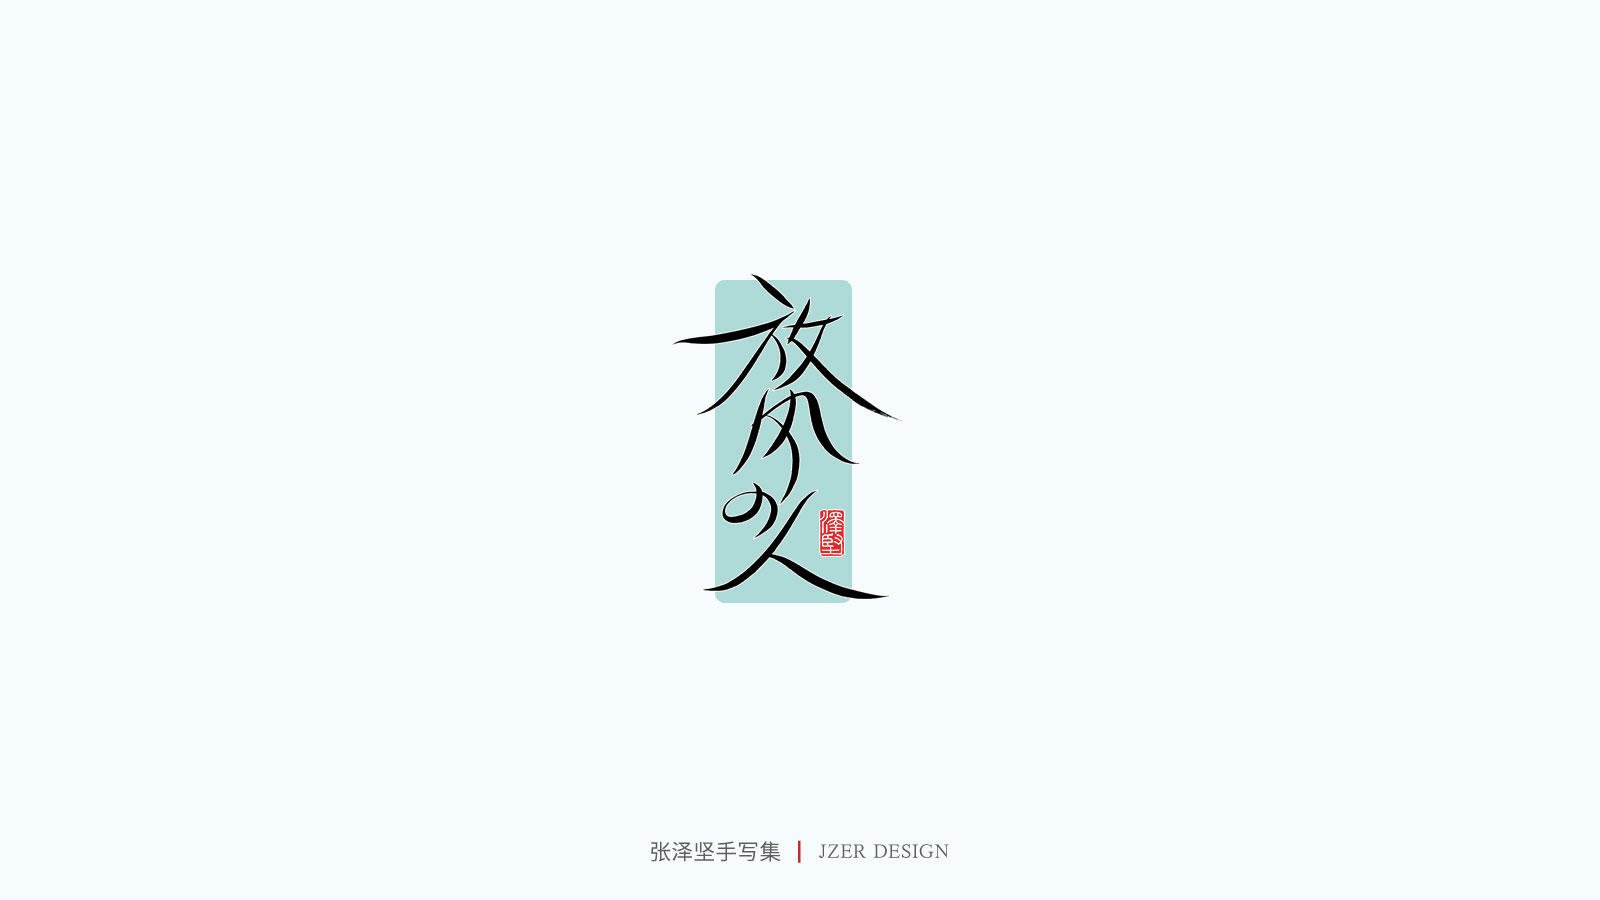 28P Collection of the latest Chinese font design schemes in 2021 #.562